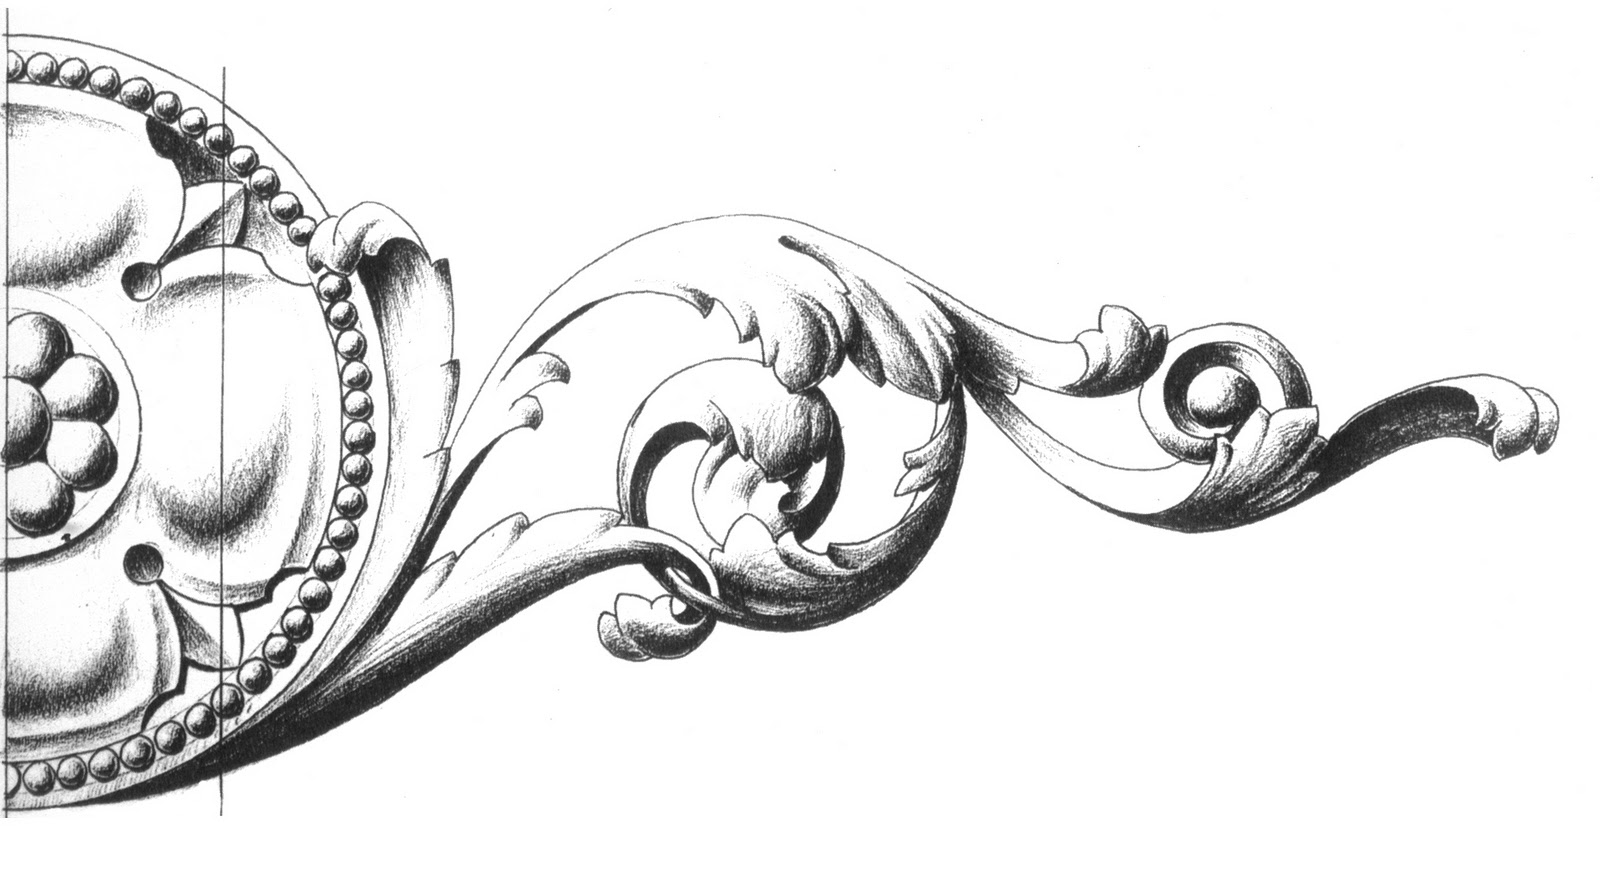 Victorian Gothic Furniture Ornament Drawings By Surface Fragments 2